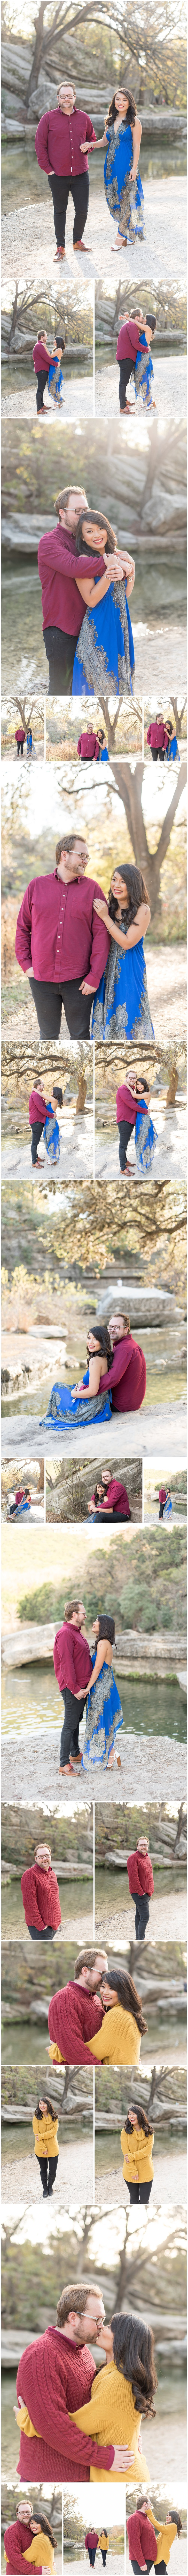 Bull Creek Park Engagement Session | Austin, TX | Katelyn Todd Photography